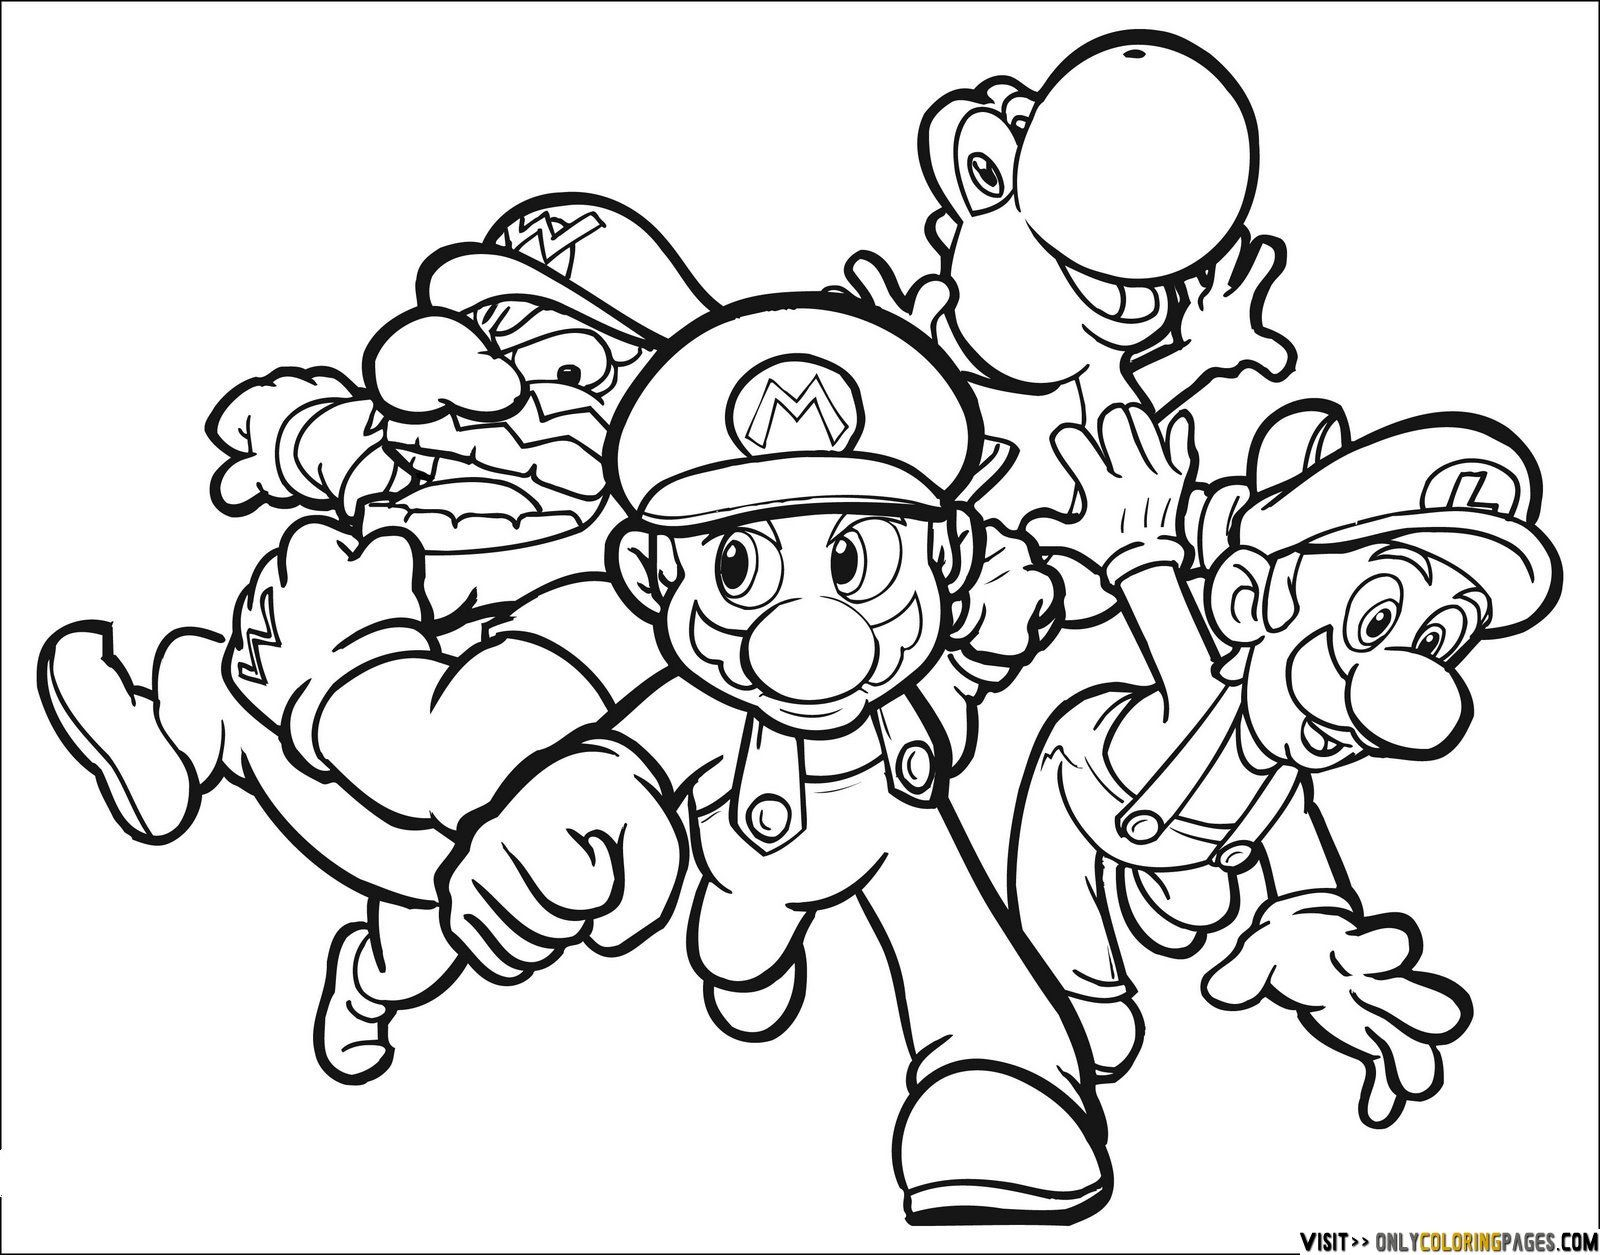 mario coloring pages for boys | Fargelegging | Pinterest | Schultüte ...